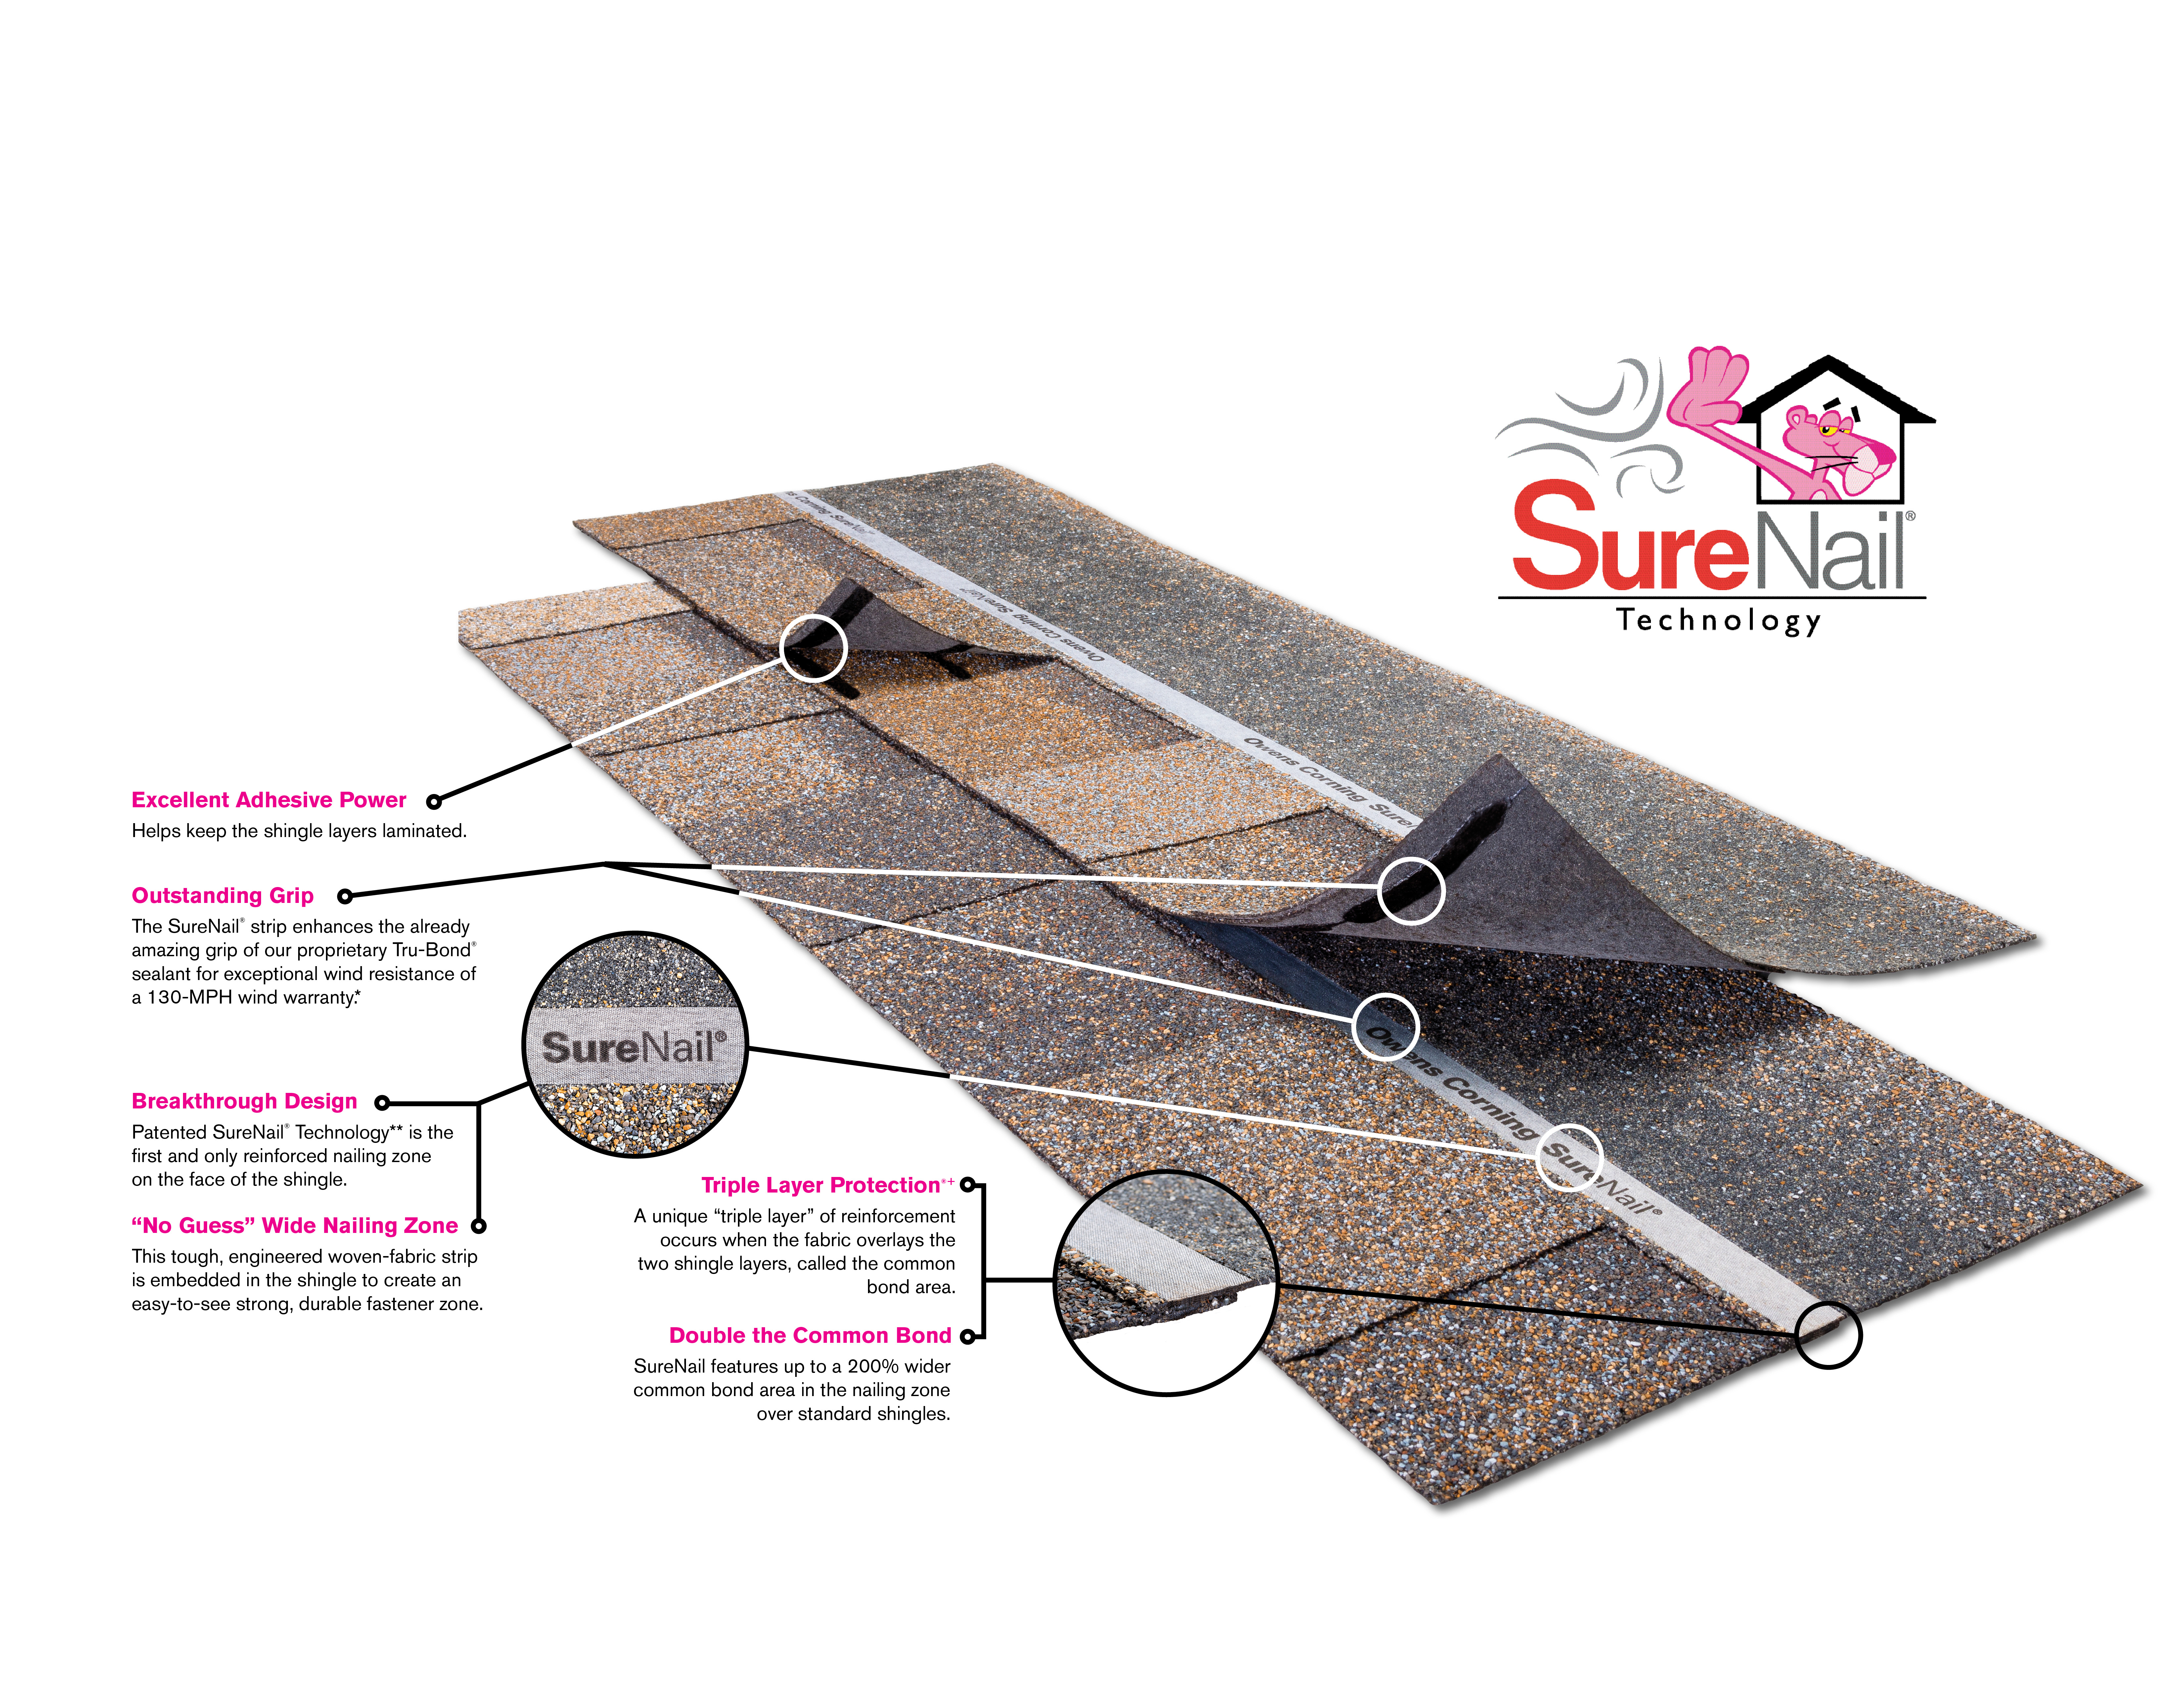 How Surenail 174 Technology Can Add Protection To Your Home